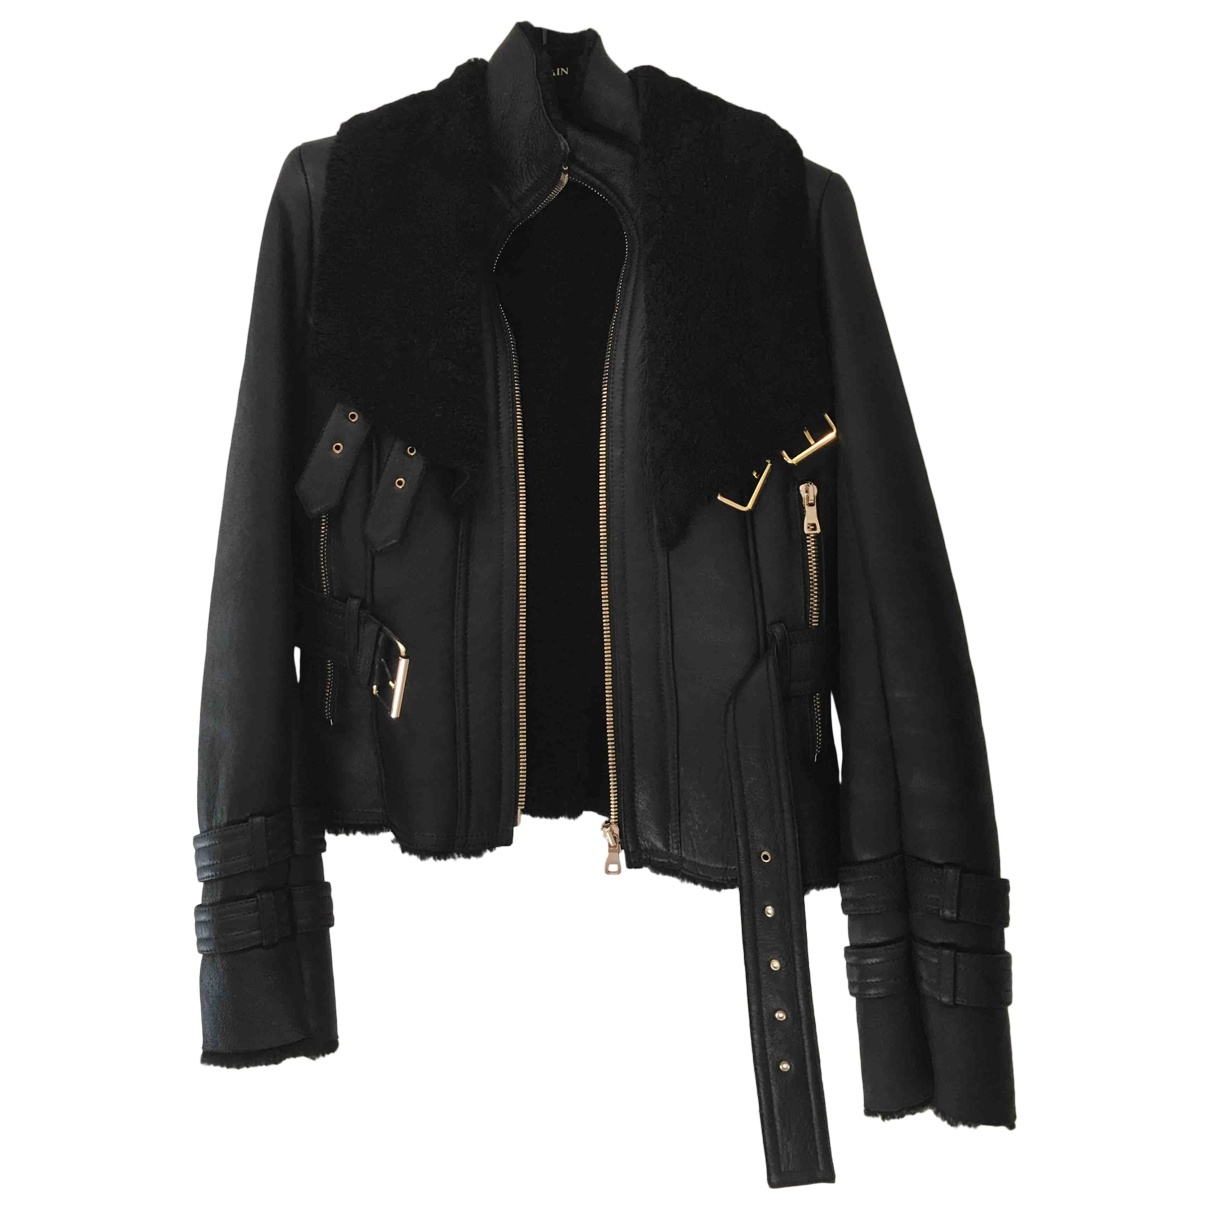 Balmain \N Black Fur jacket for Women 40 FR